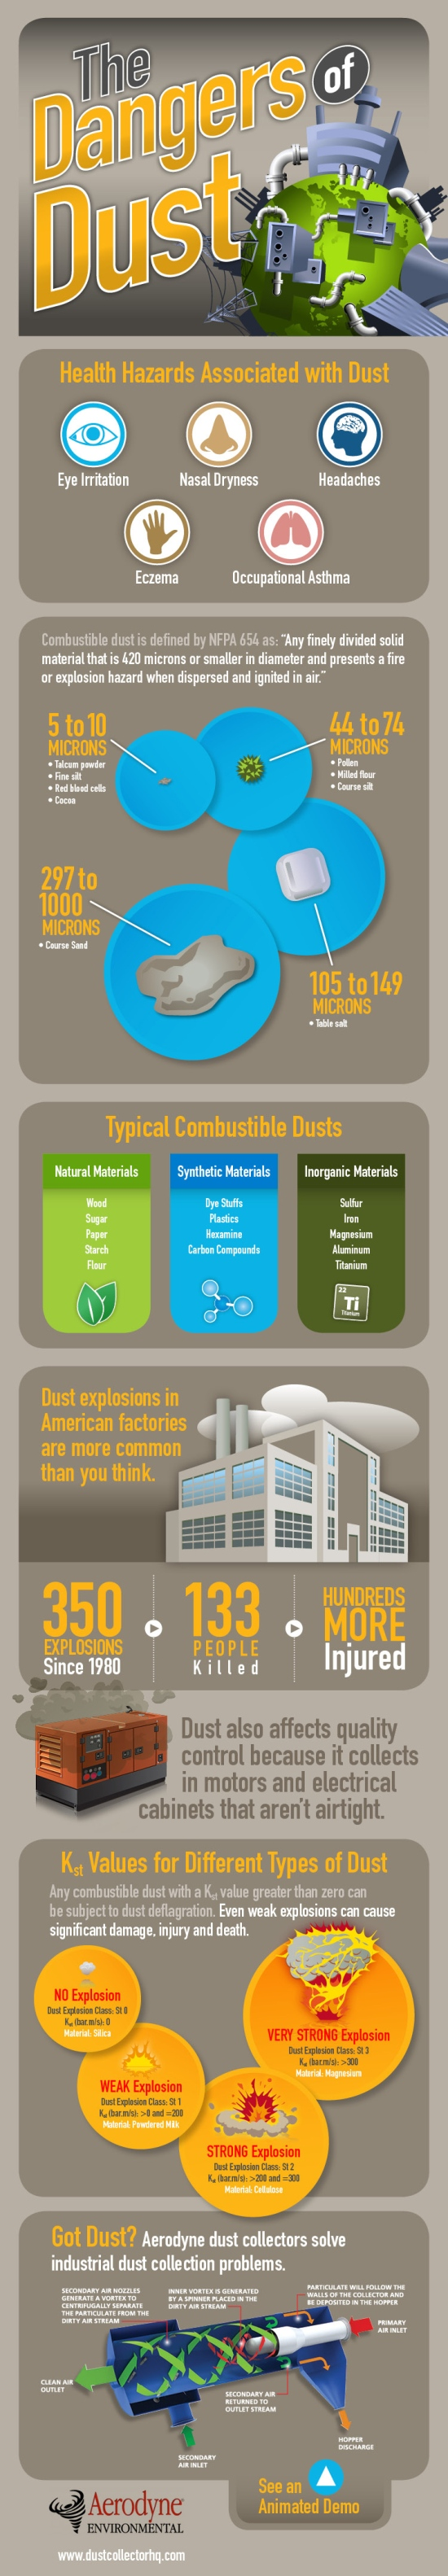 Dangers of Combustible Dust